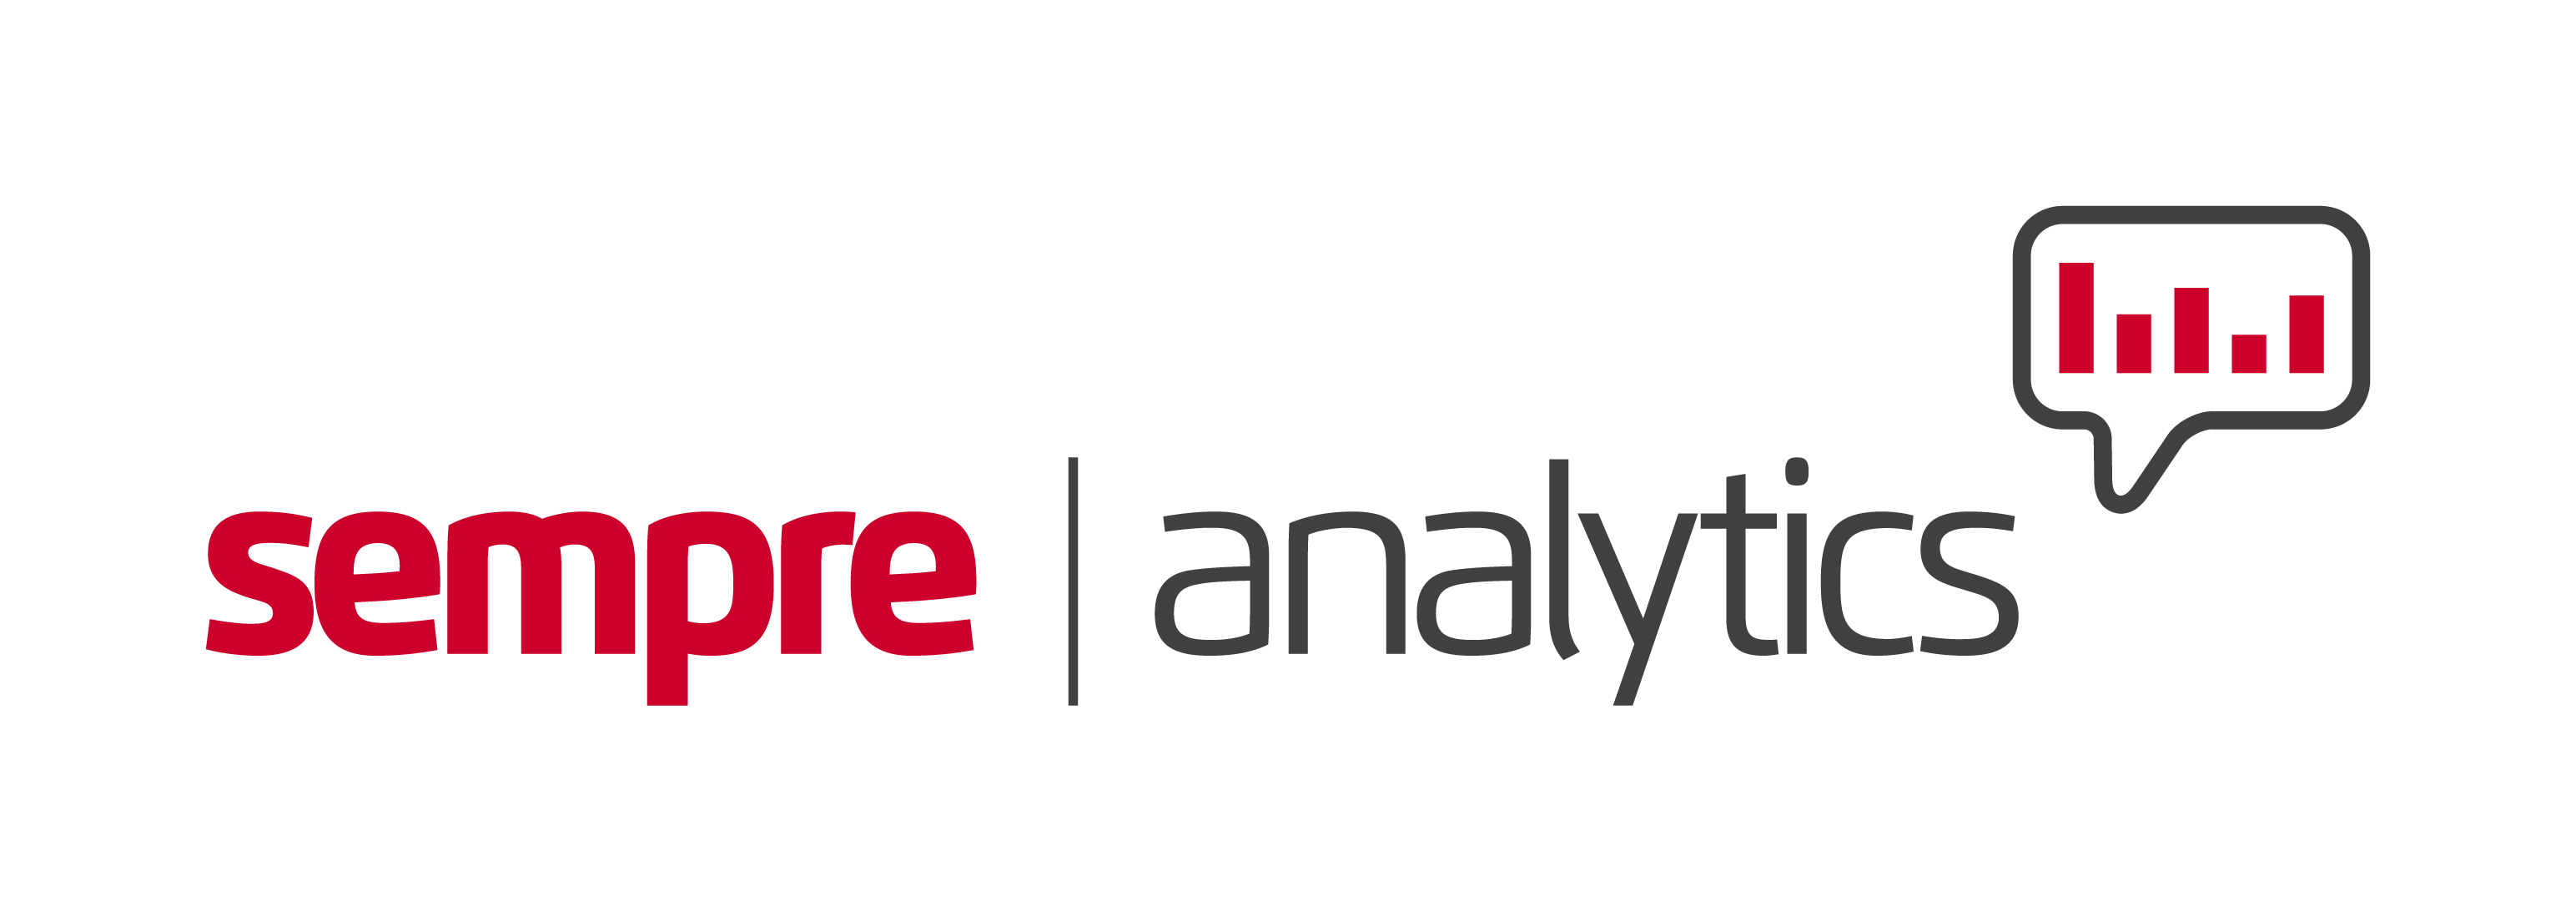 Sempre Analytics logo